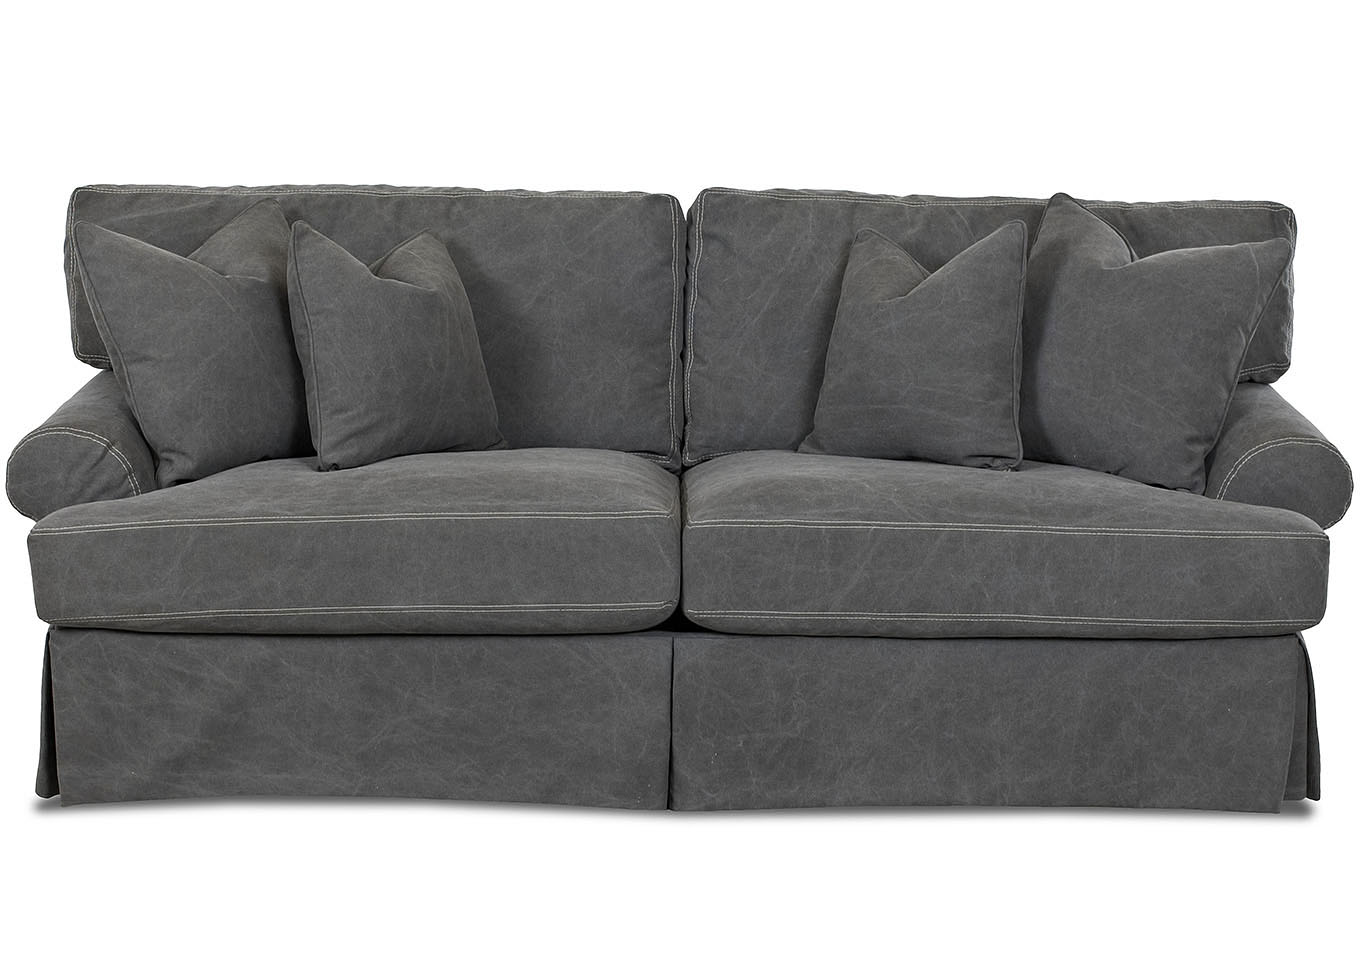 microfiber sofas how to fix a broken sofa bed frame amite city furniture la lahoya tibby pewter klaussner home furnishings